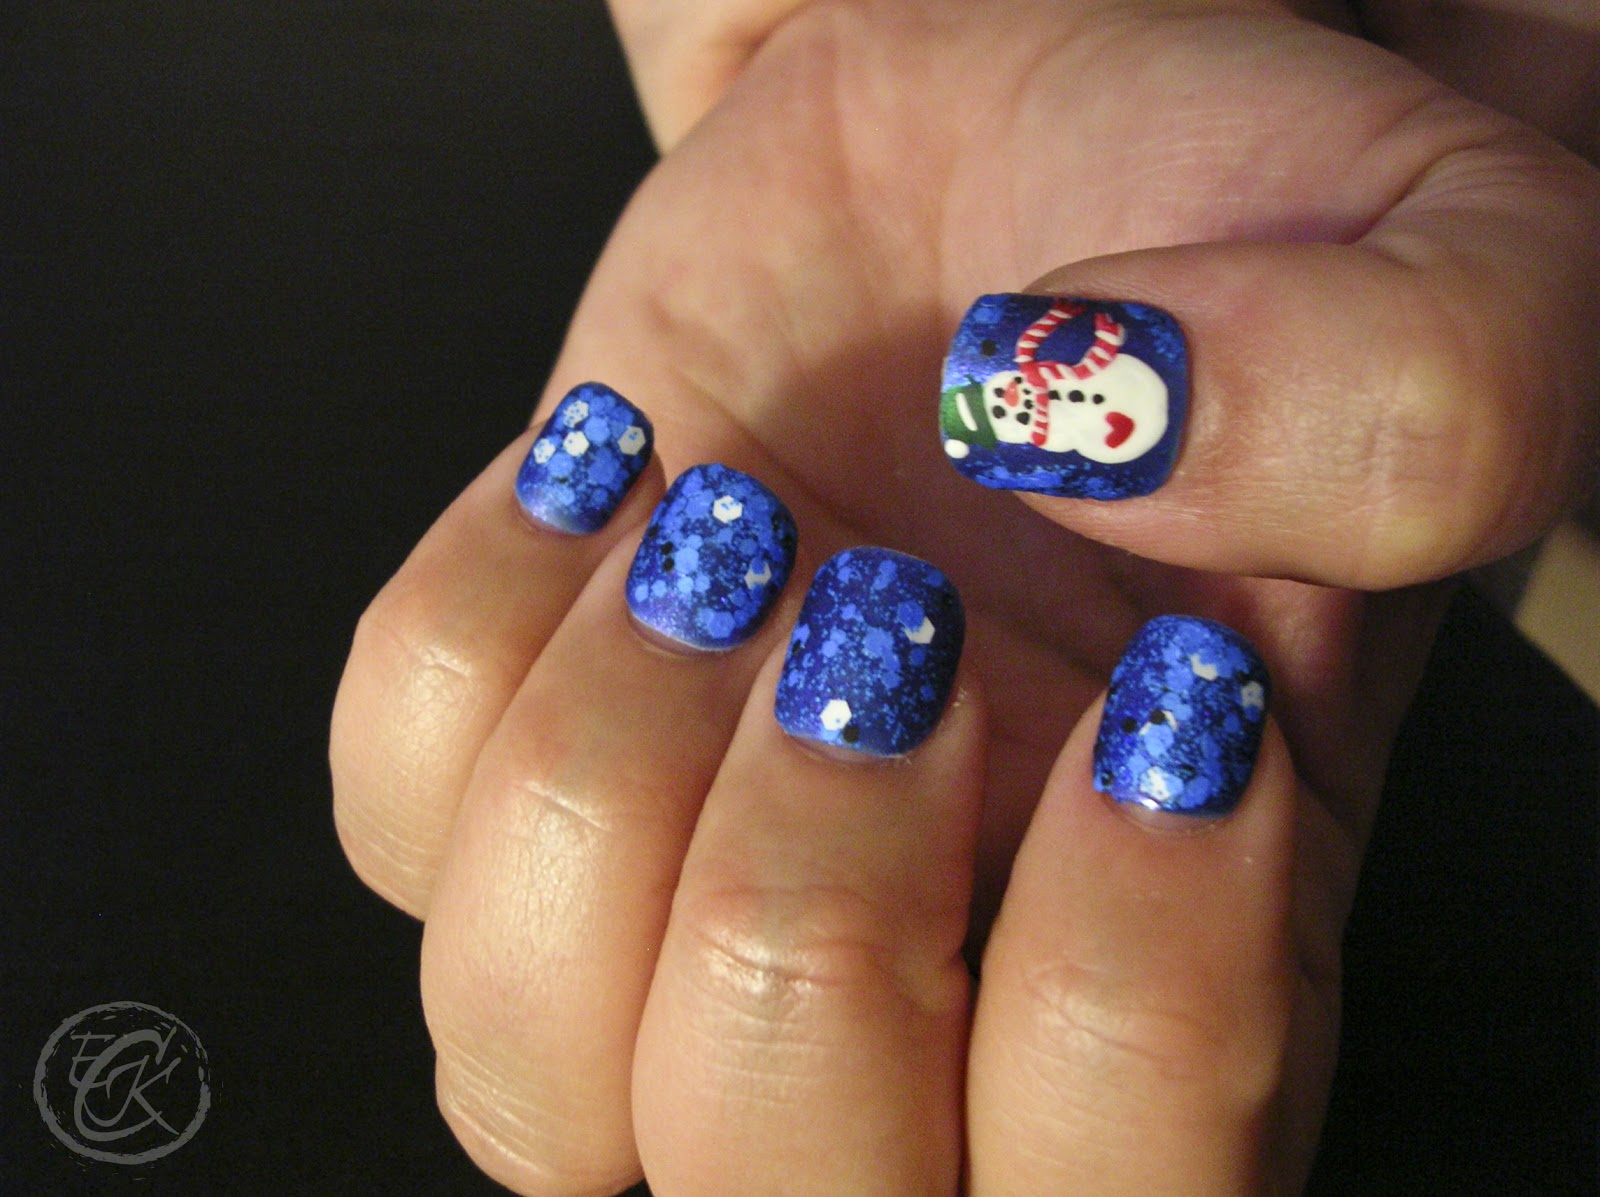 ecklipsed by color on the fourth day of christmas my nail art gave